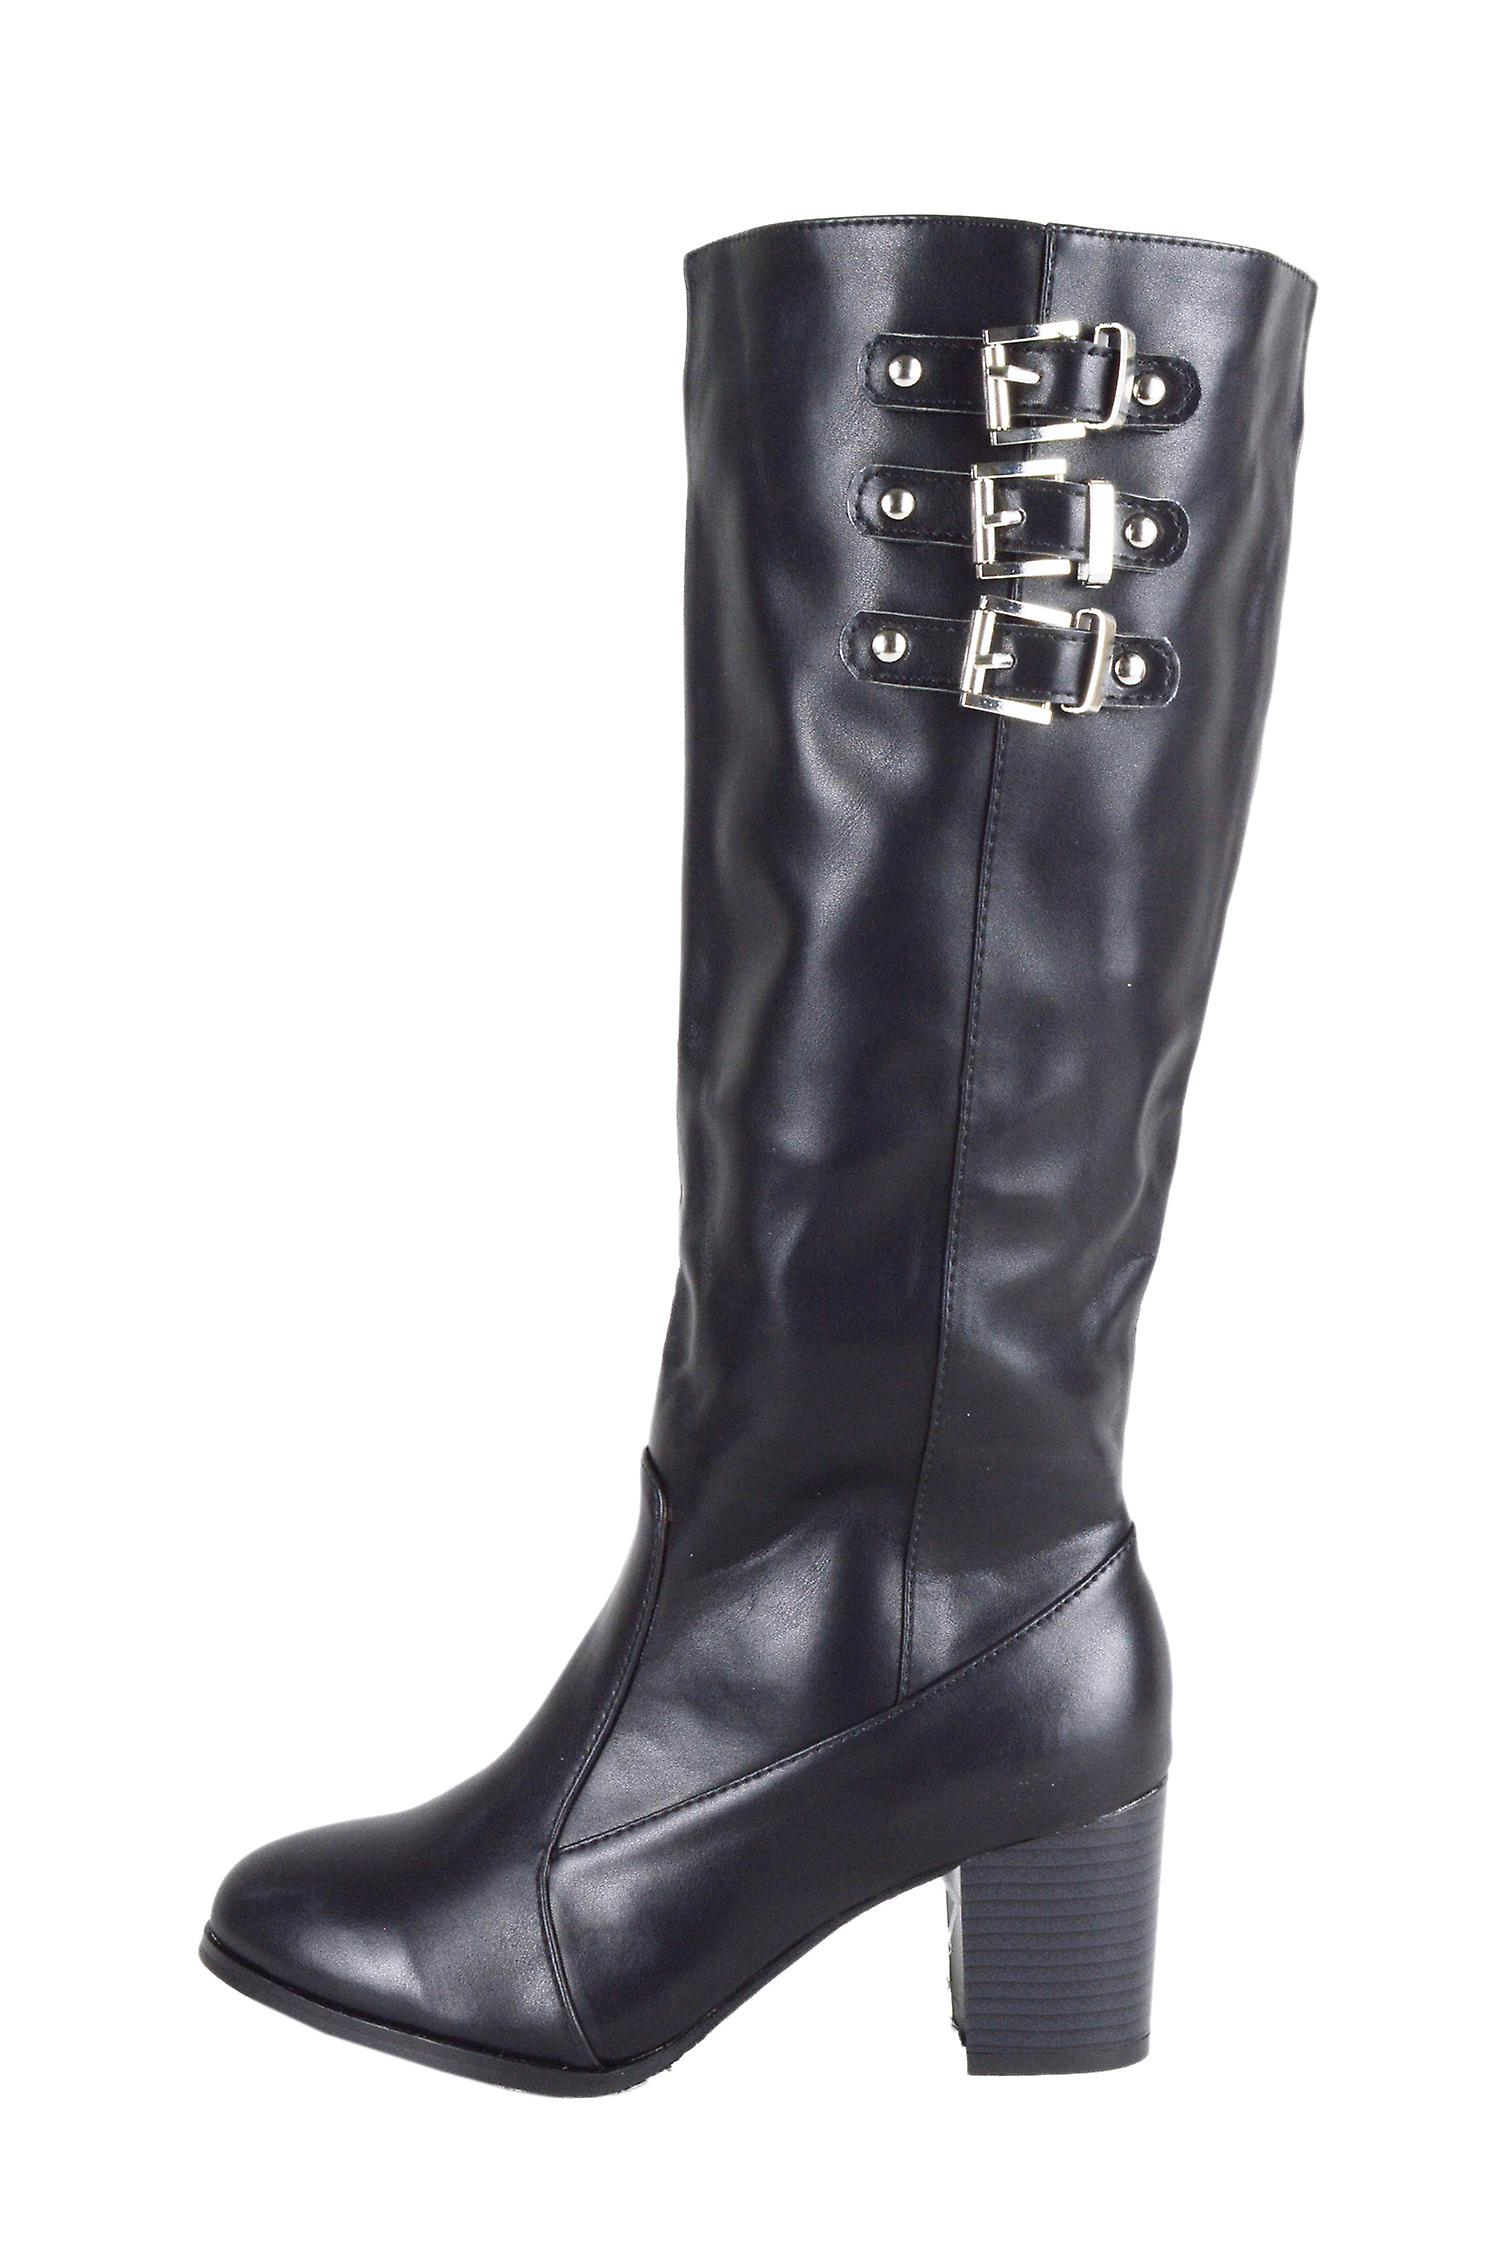 a82bfb42b88 LMS Black Faux Leather Block Heel Knee High Boot With Buckles